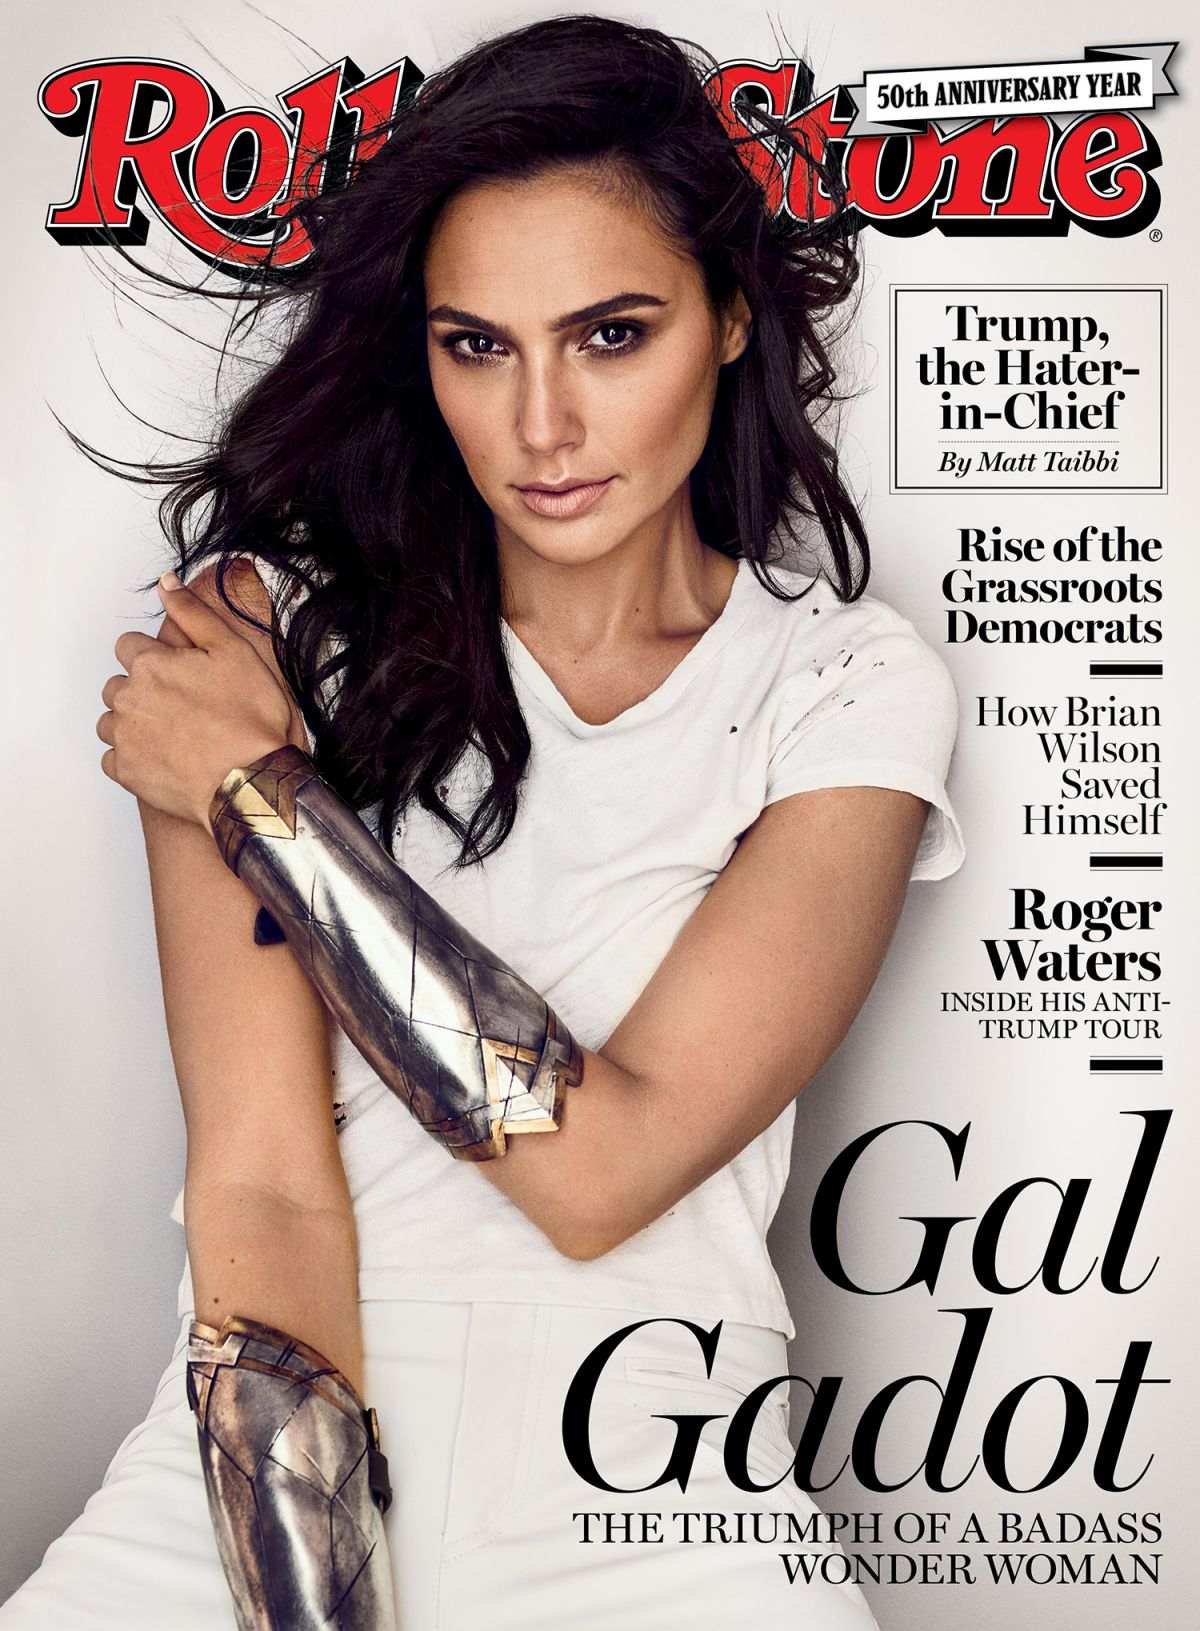 GAL GADOT for Rolling Stone Magazine, 50th Anniversary Edition